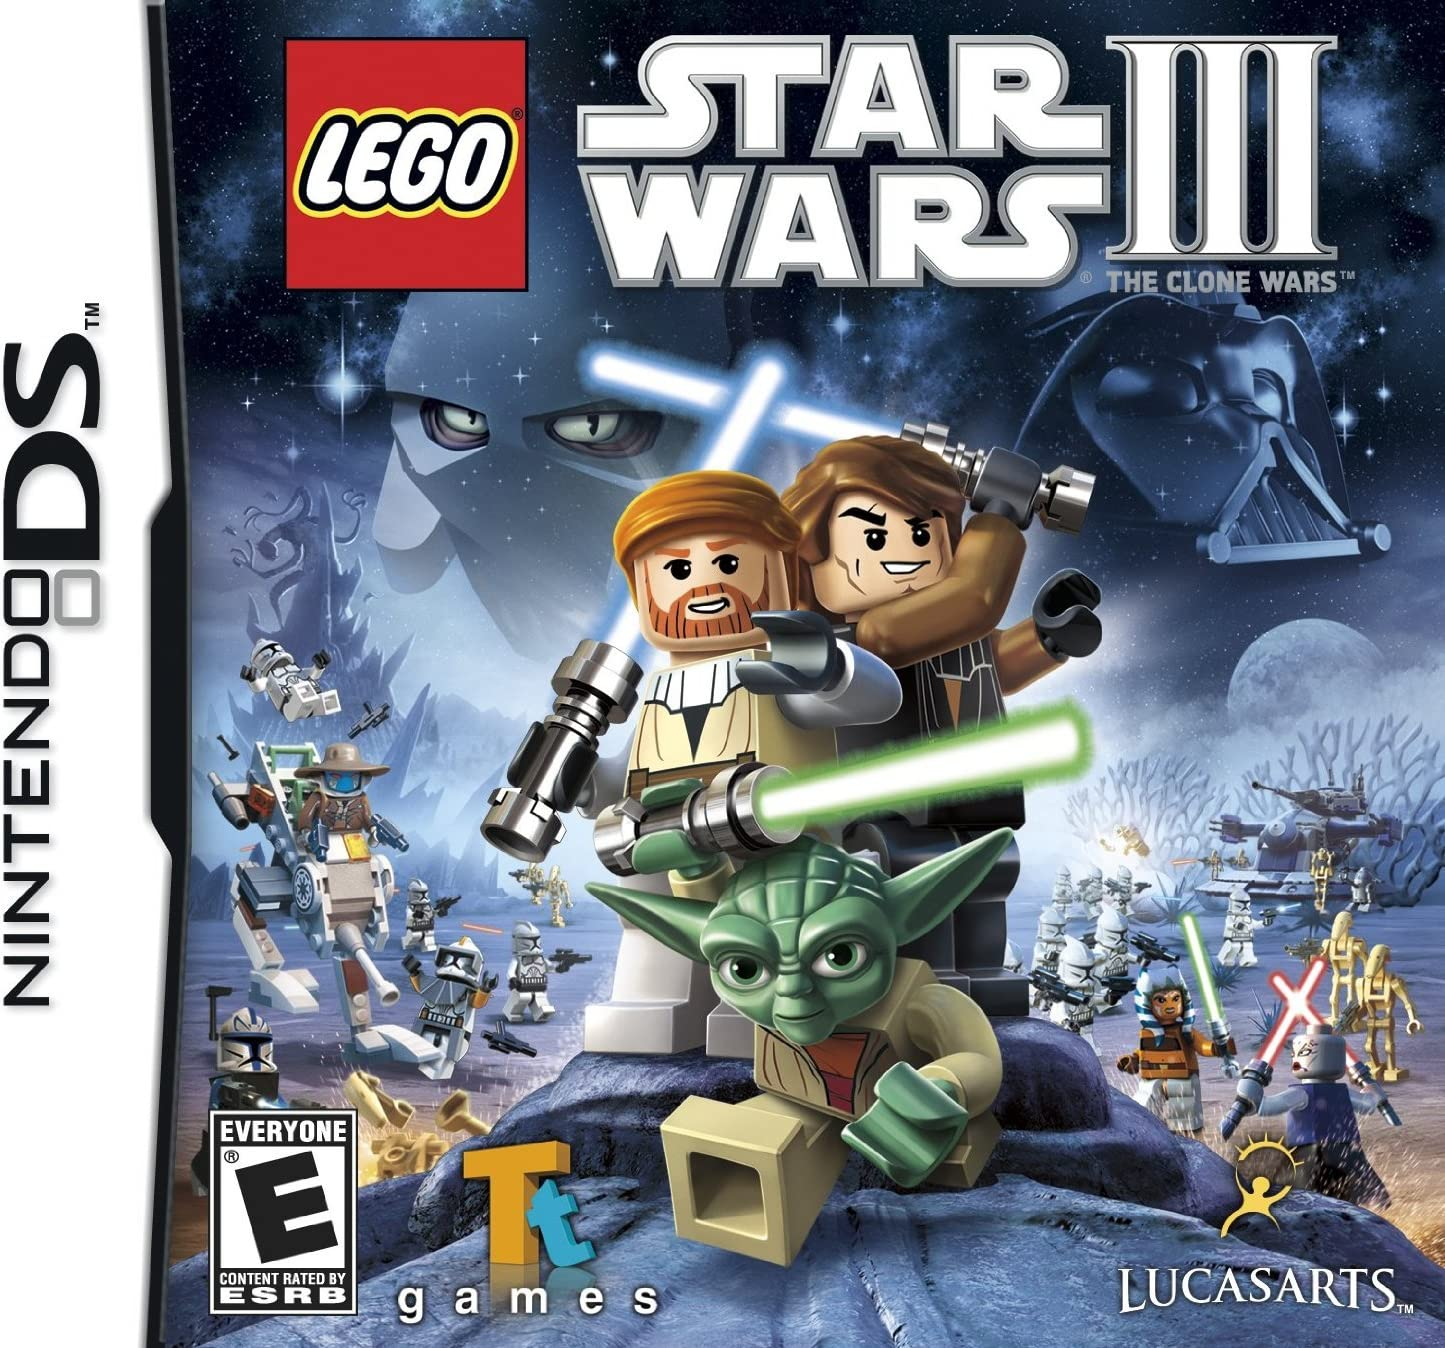 lego star wars 3 100 save game pc download